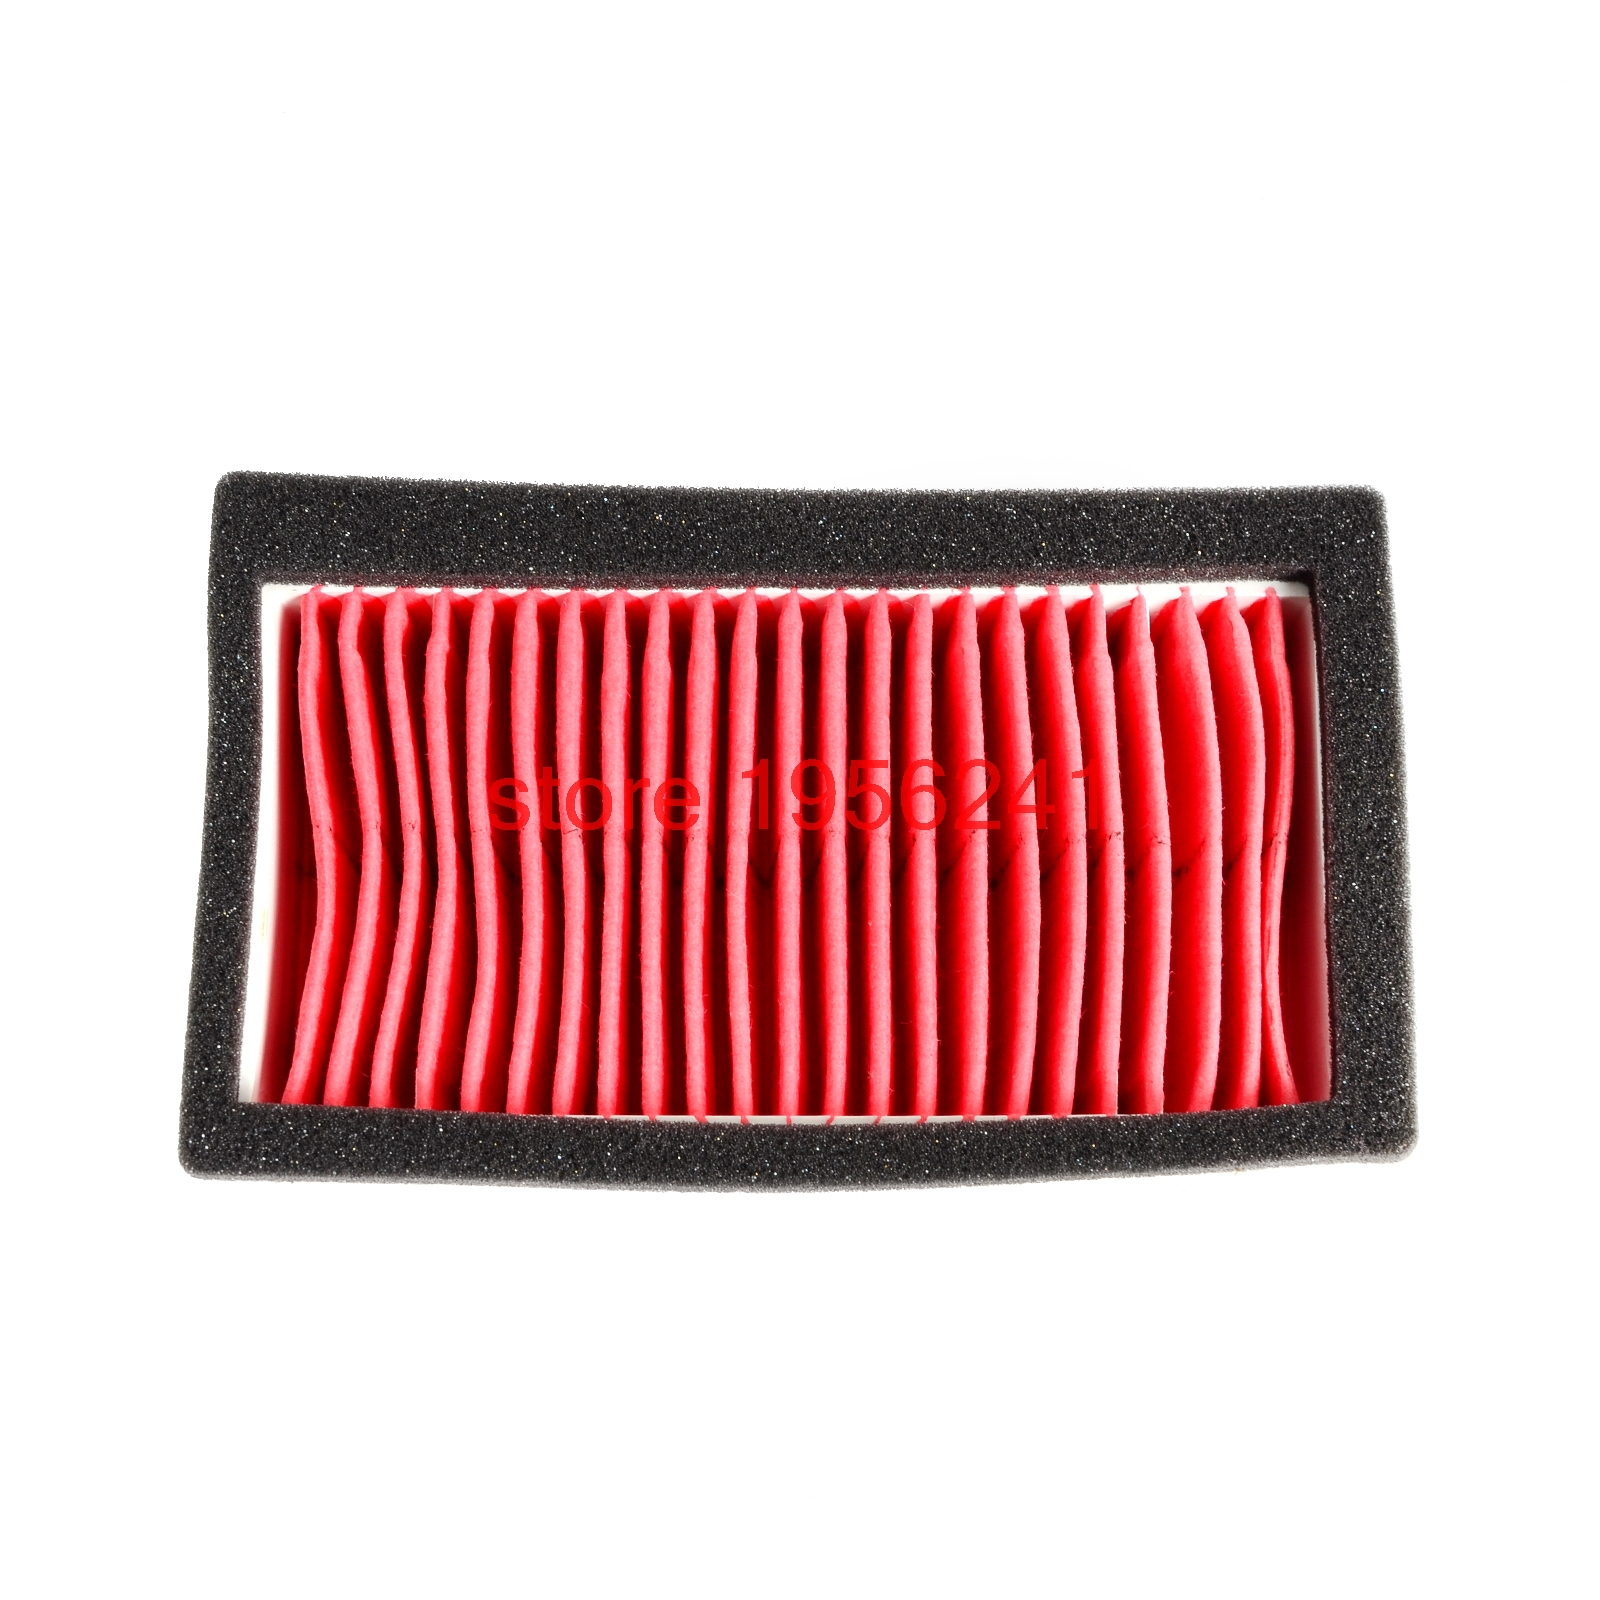 Motorcycle Air Cleaner Filter For Yamaha XT600 1991 - 1995 1992 1993 1994 XT 600 91 92 93 91 95 e marked taillight tail brake turn signals integrated led light smoke for 1991 1992 1993 1994 1995 yamaha fzr1000 fzr 1000 exup